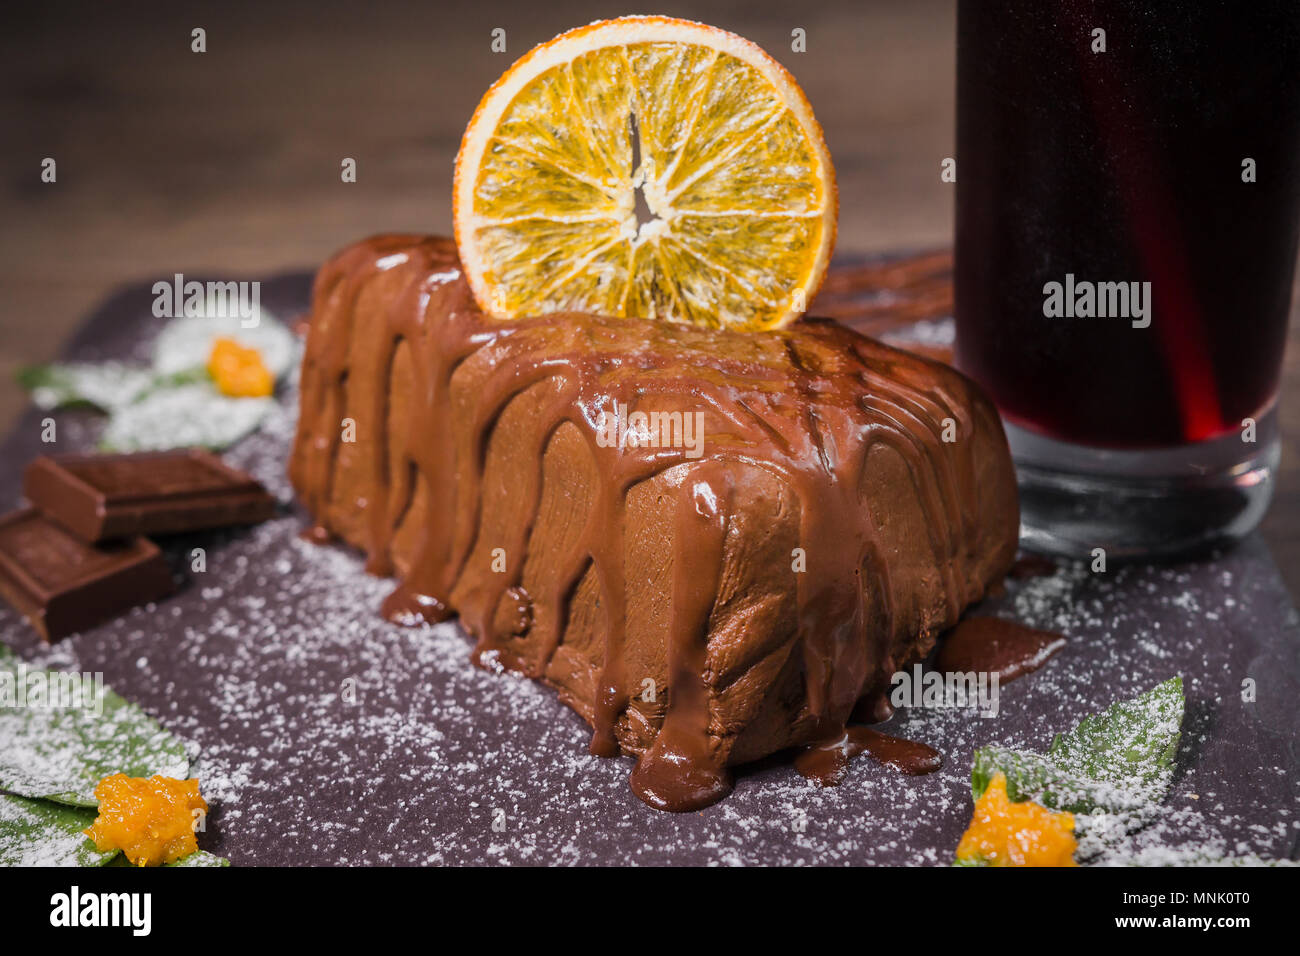 Chocolate dessert with orange chips on a wooden background - Stock Image